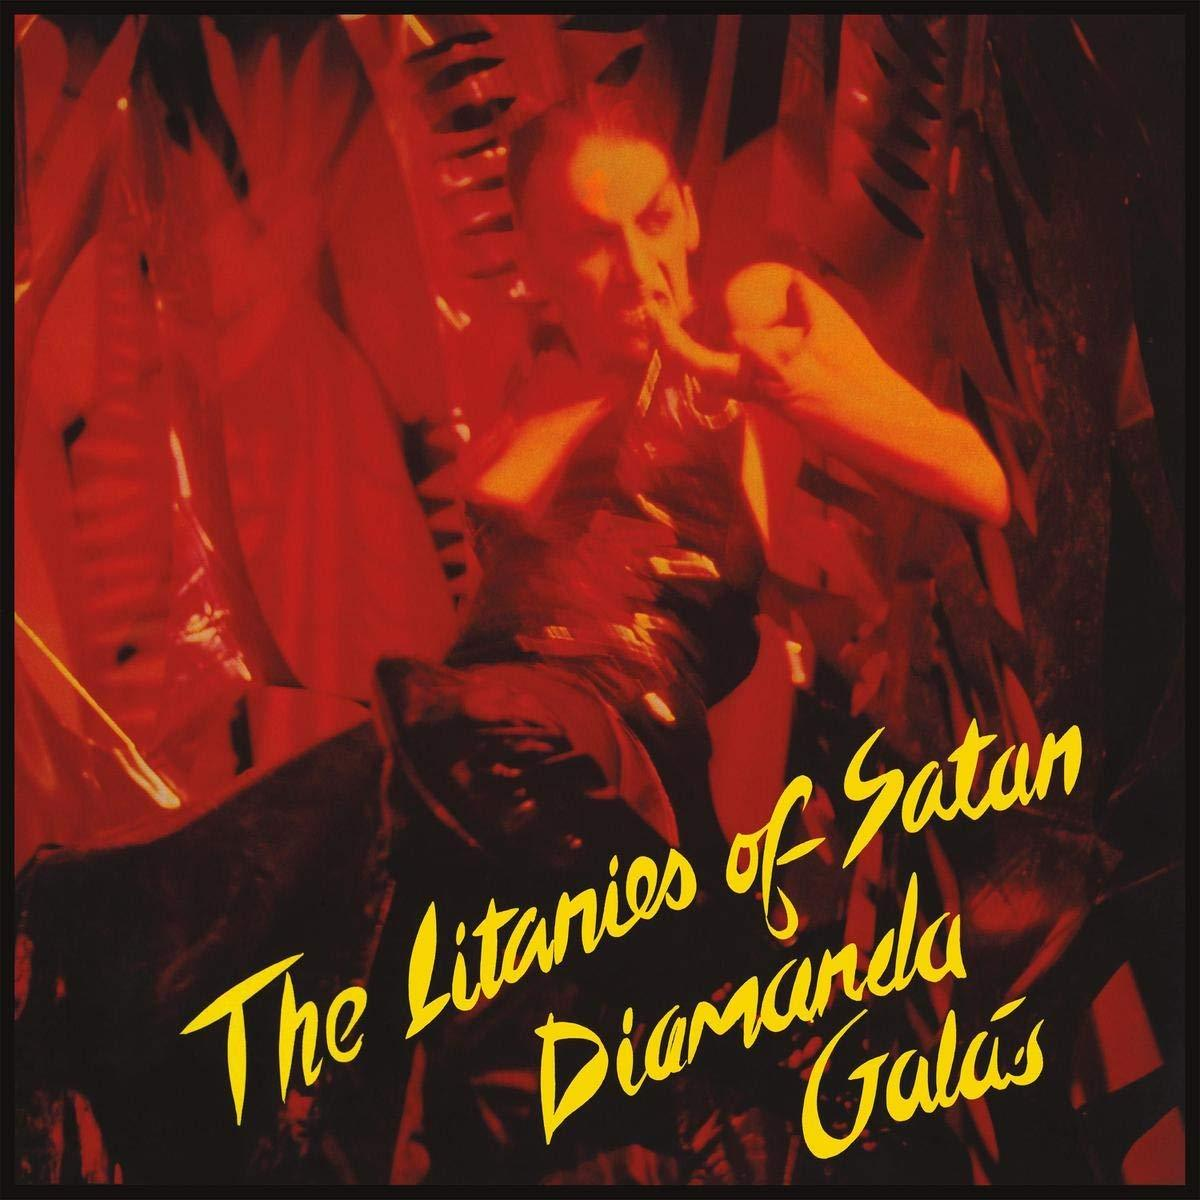 Diamanda Galas - The Litanies Of Satan (Remastered) [LP] - Urban Vinyl | Records, Headphones, and more.